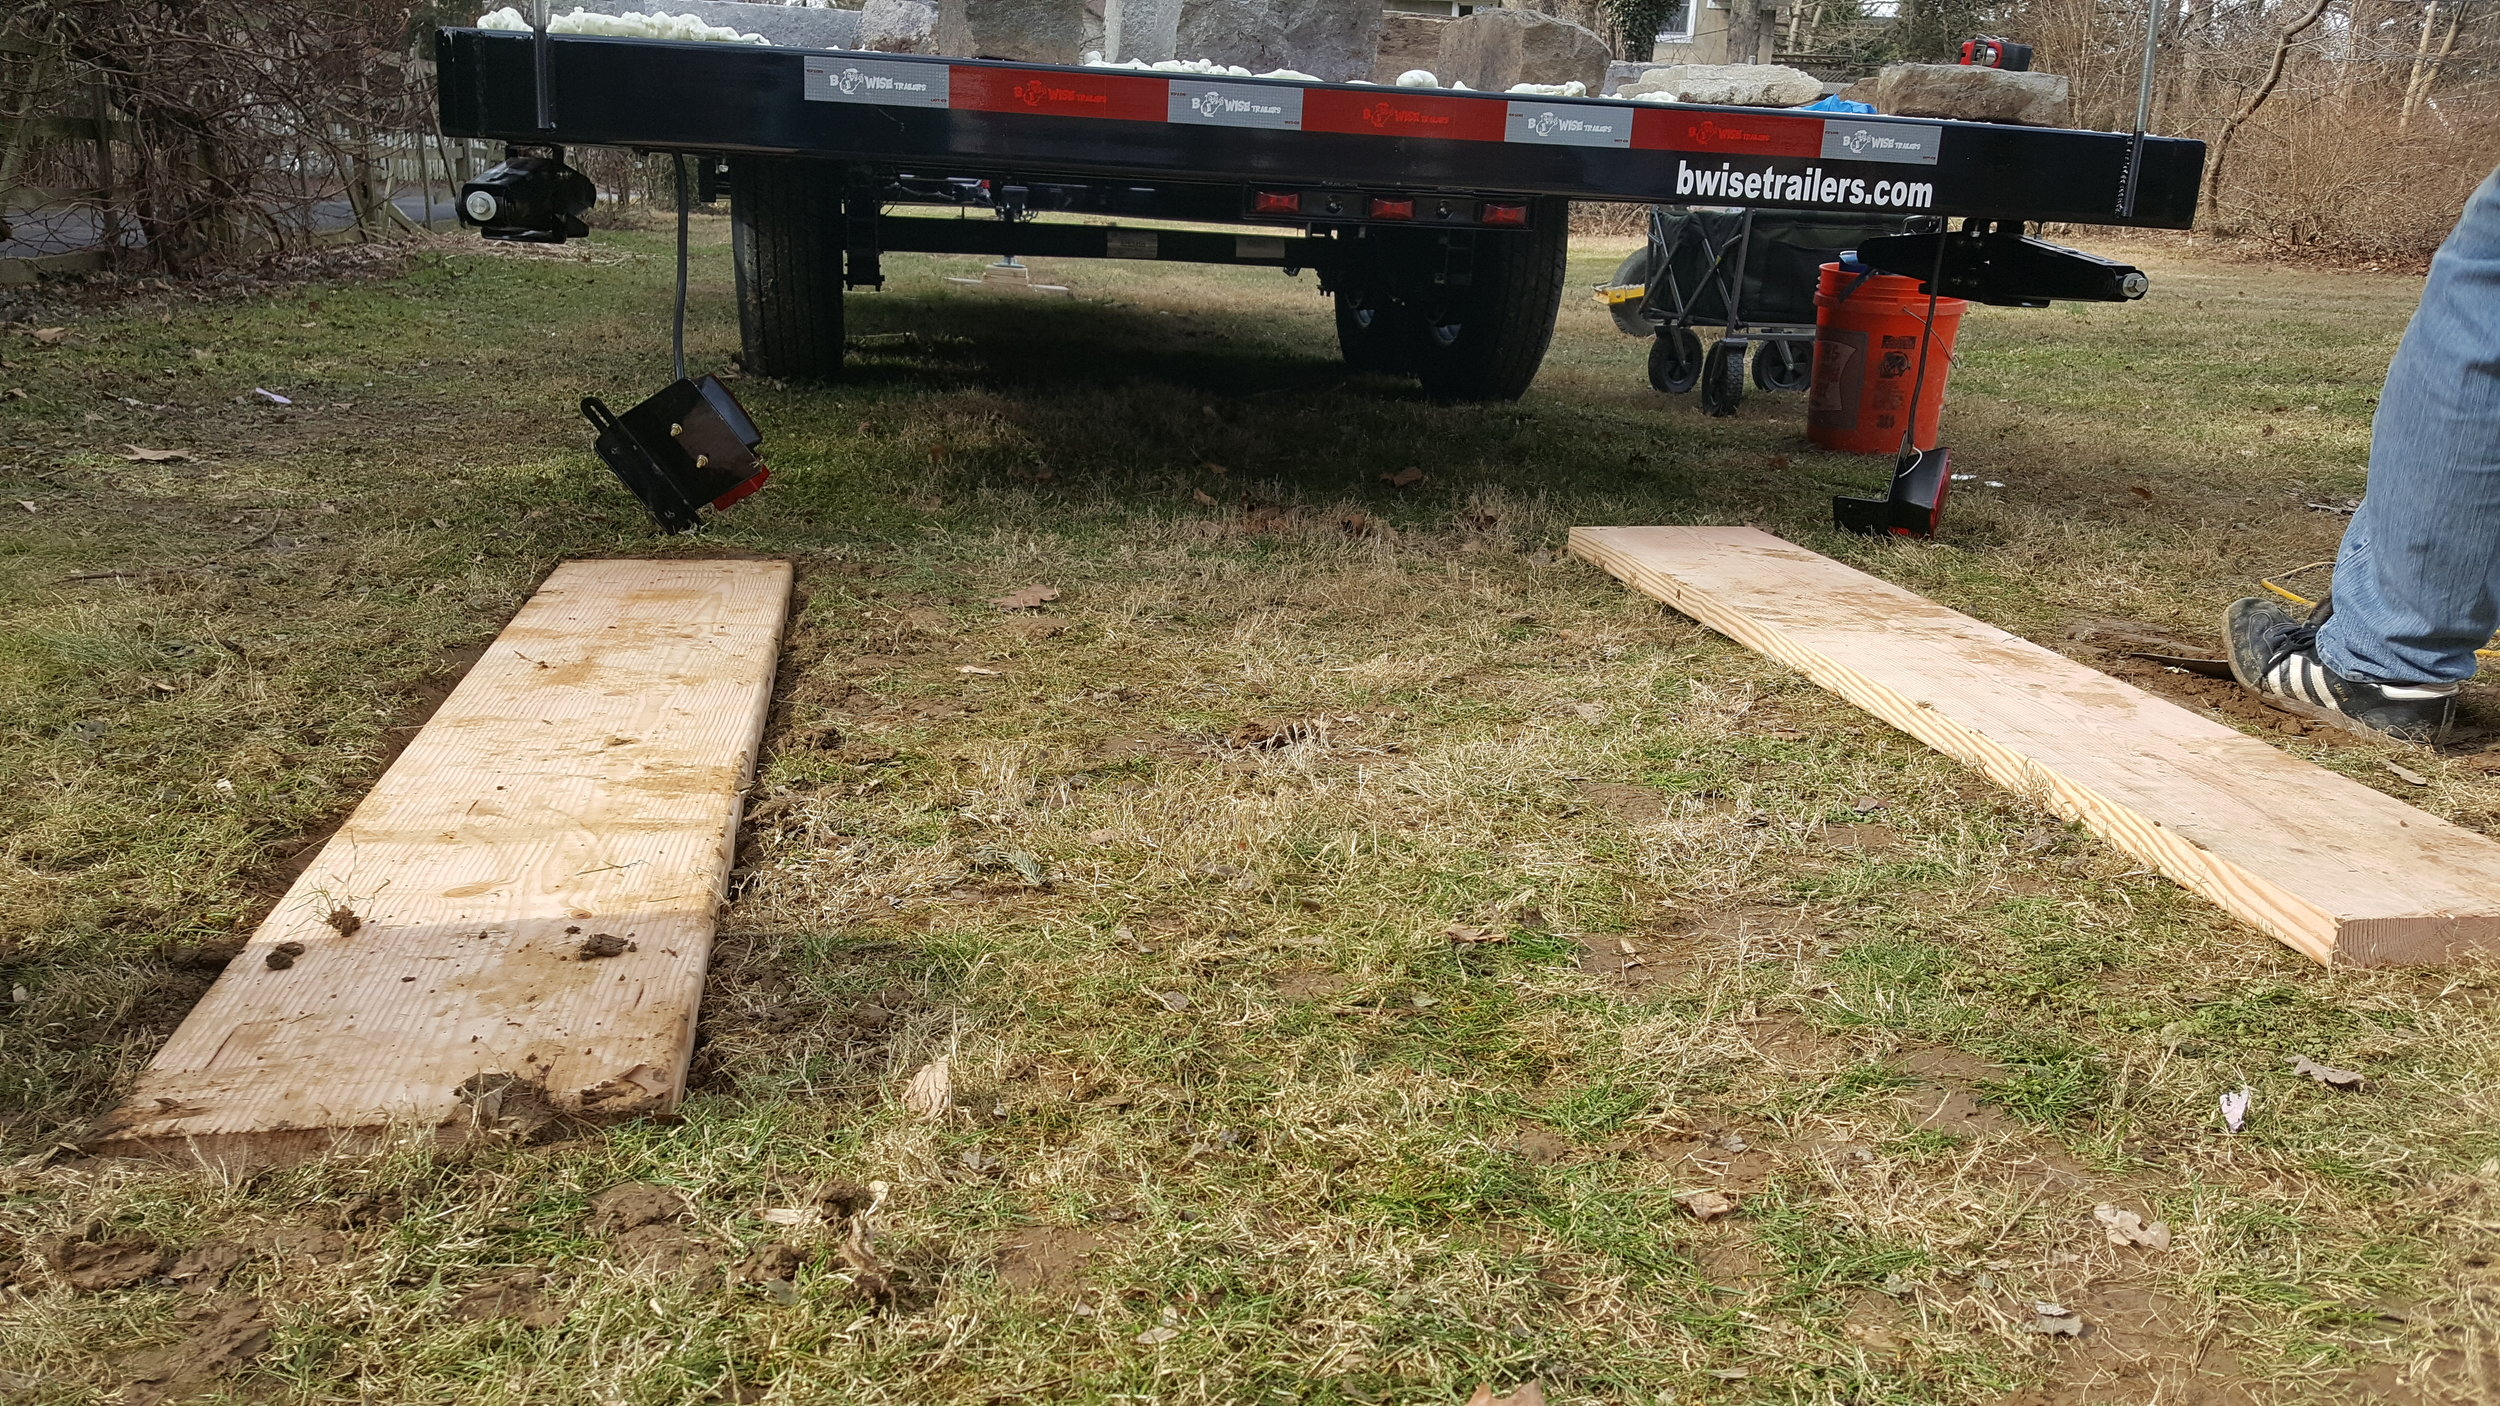 2 in. x 12 in. x 12 ft. Better Prime Douglas Fir Board - we cut these in 5 foot lengths to put under the wheels.